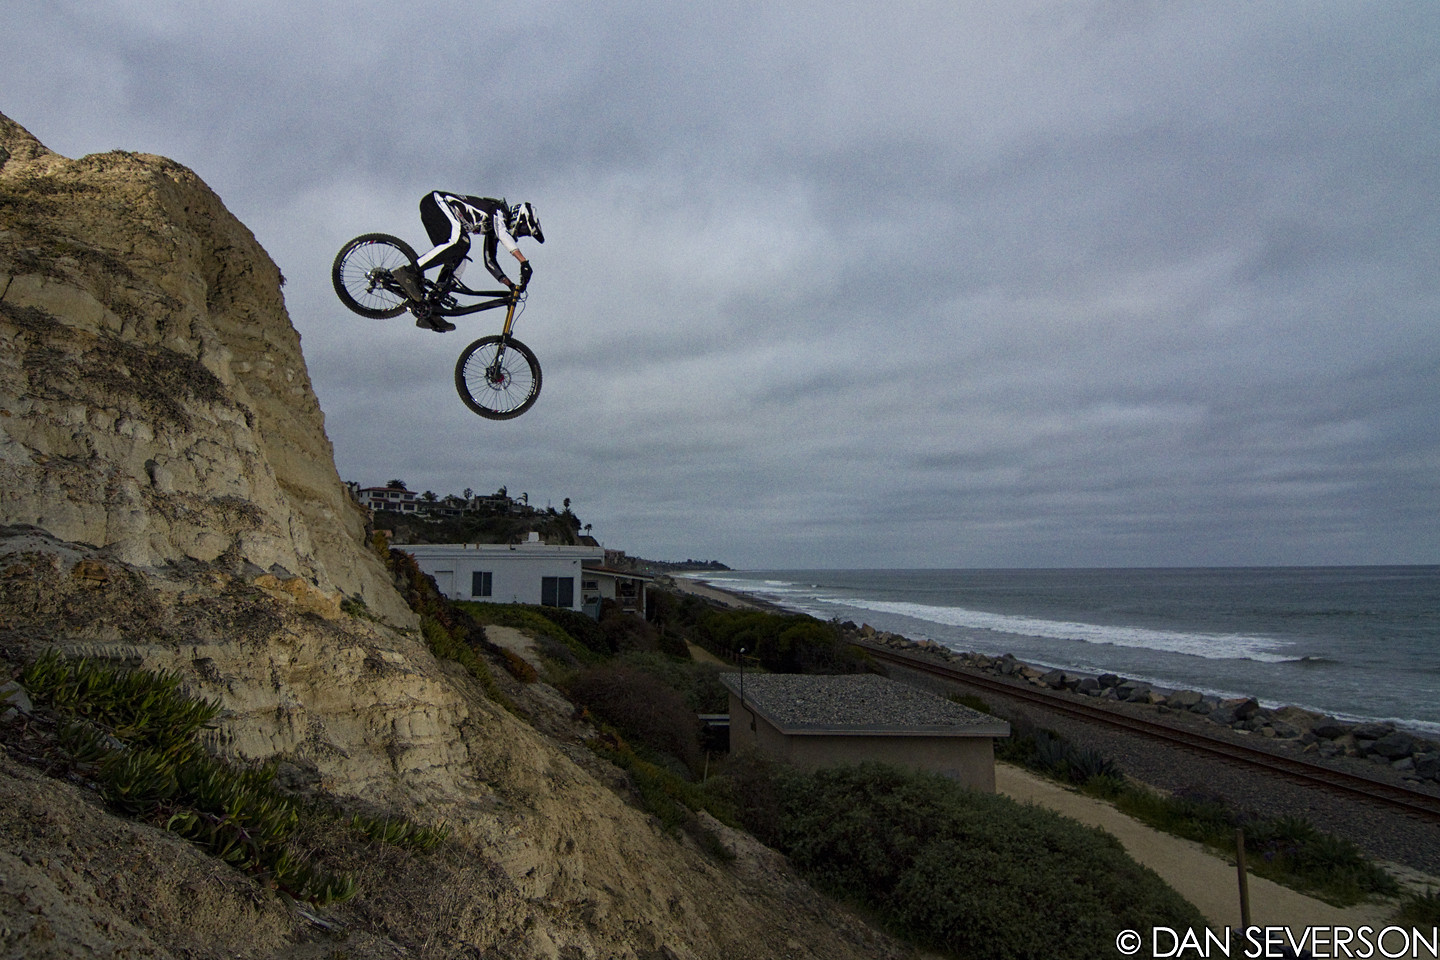 Charlie Harrison tackles the beast - danseverson photo - Mountain Biking Pictures - Vital MTB